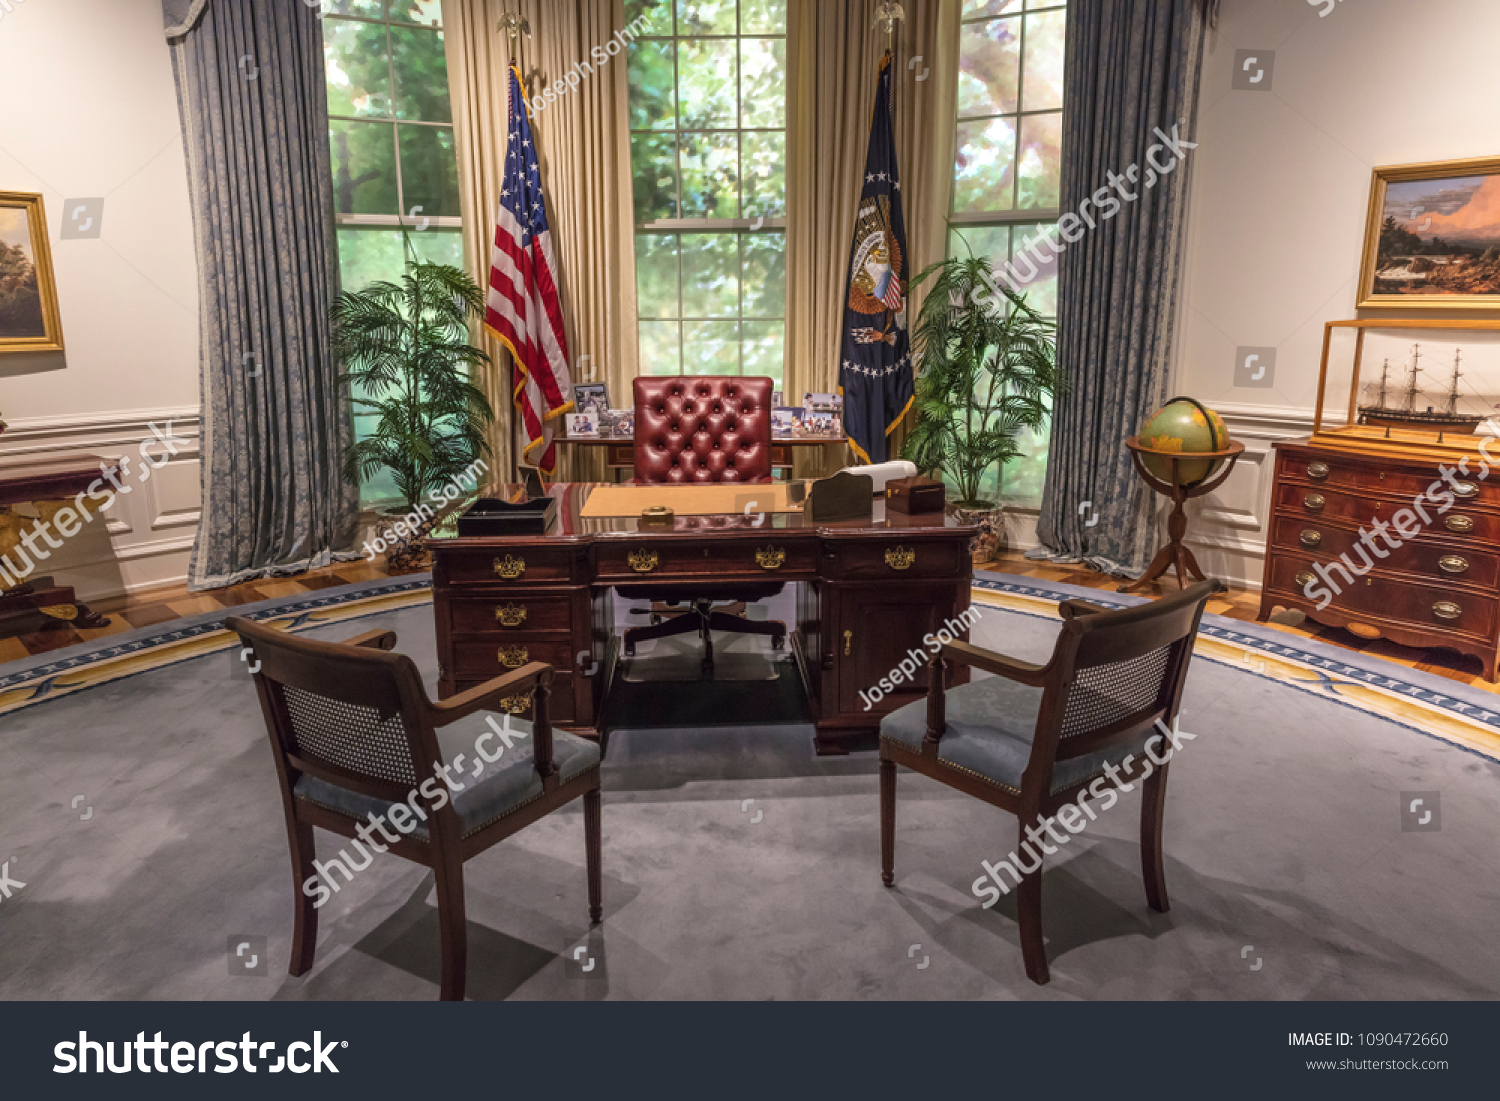 bush oval office. FEBRUARY 28, 2018 - COLLEGE STATION TEXAS George H.W. Bush Presidential Library And Museum Oval Office